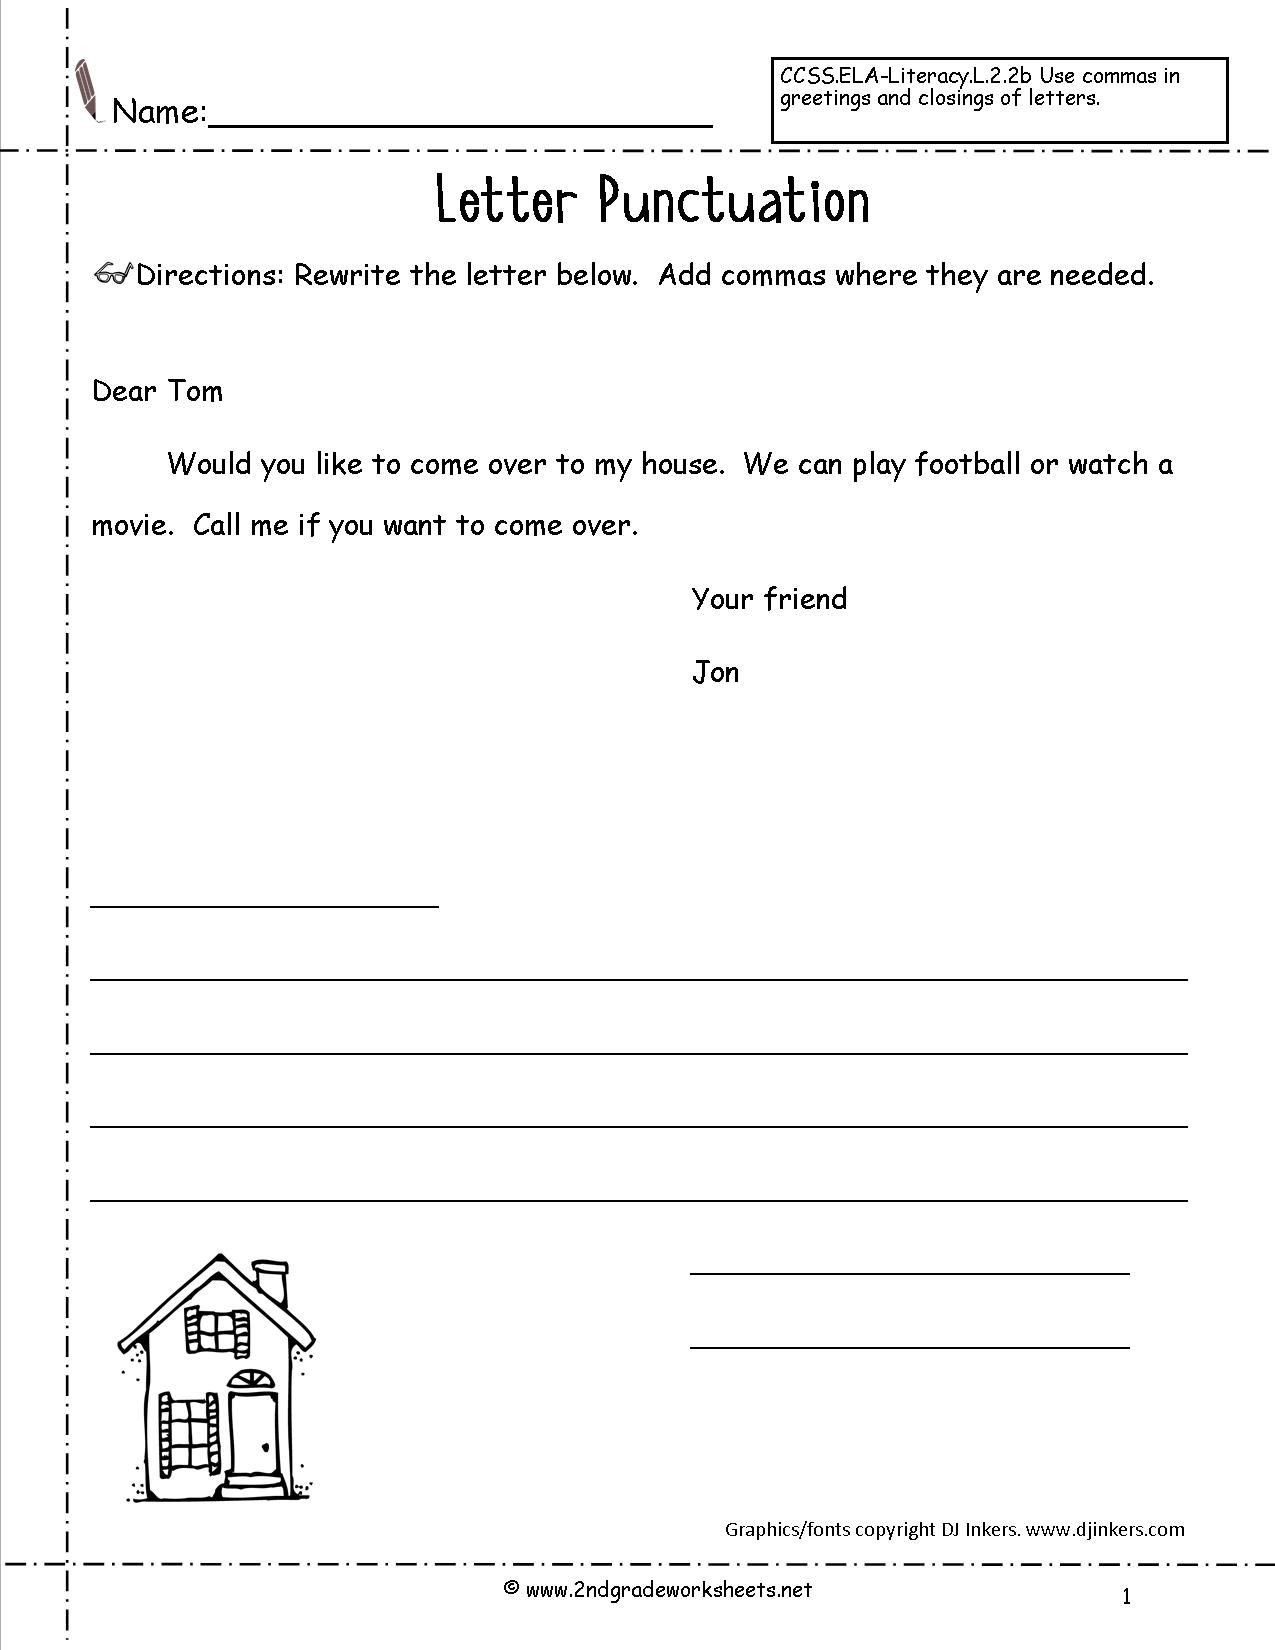 Dialogue Worksheets Middle School Letters and Parts Of A Letter Worksheet